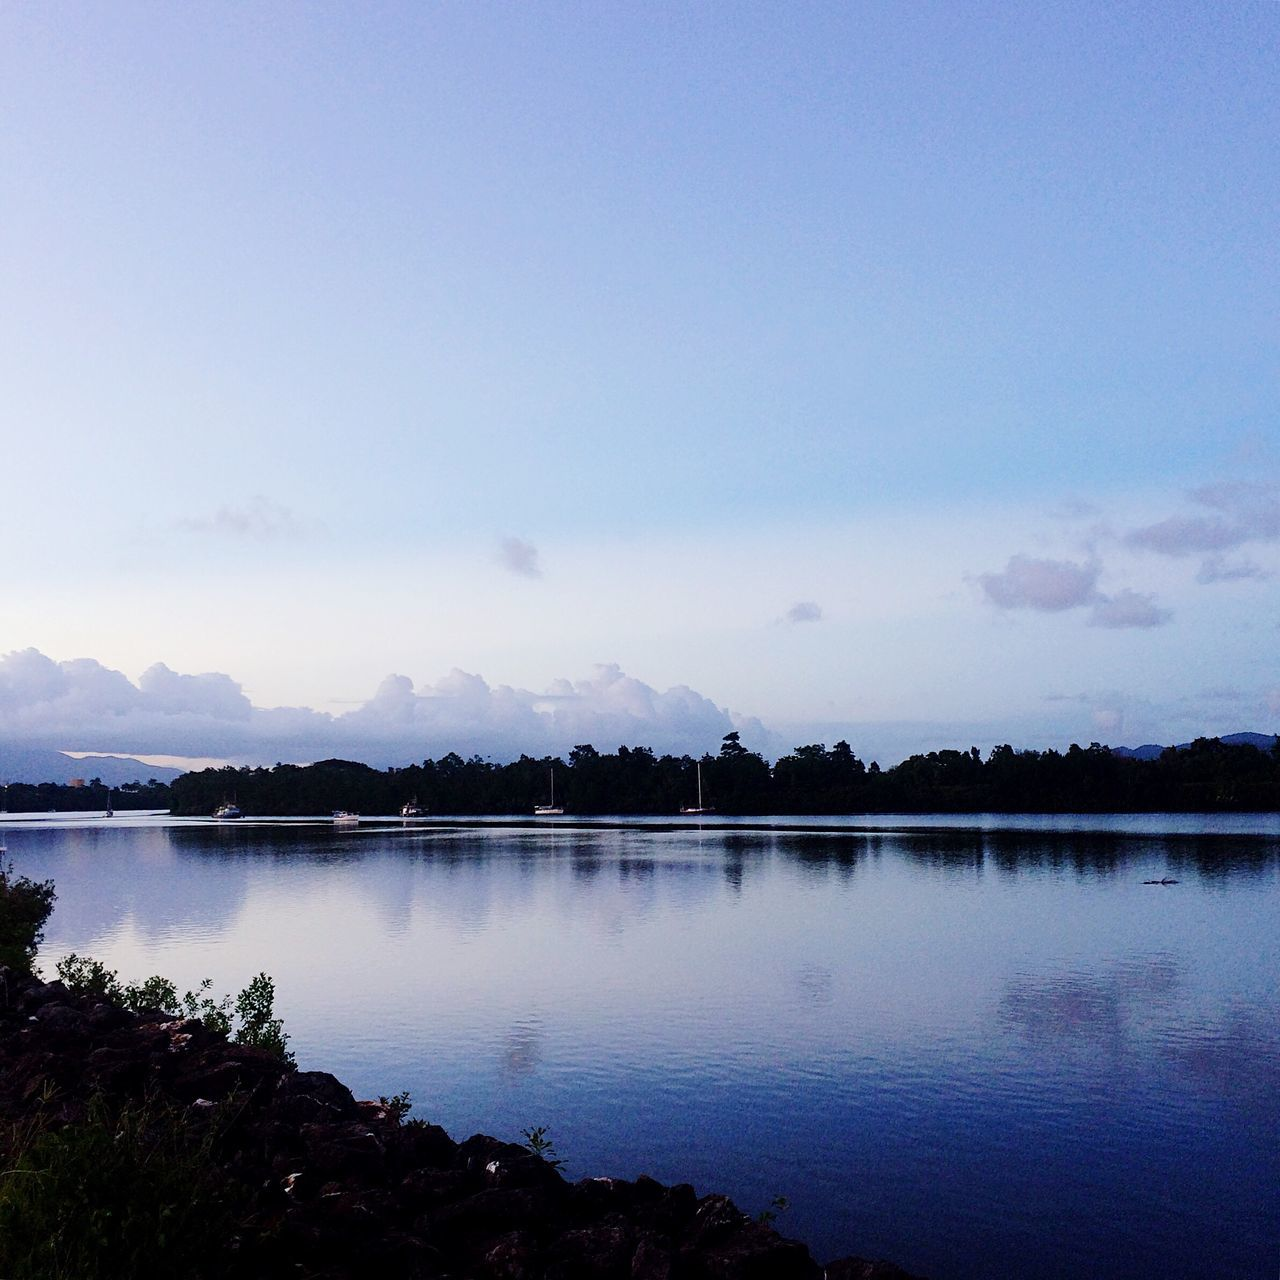 tranquil scene, nature, lake, water, tranquility, beauty in nature, scenics, reflection, no people, outdoors, sky, tree, day